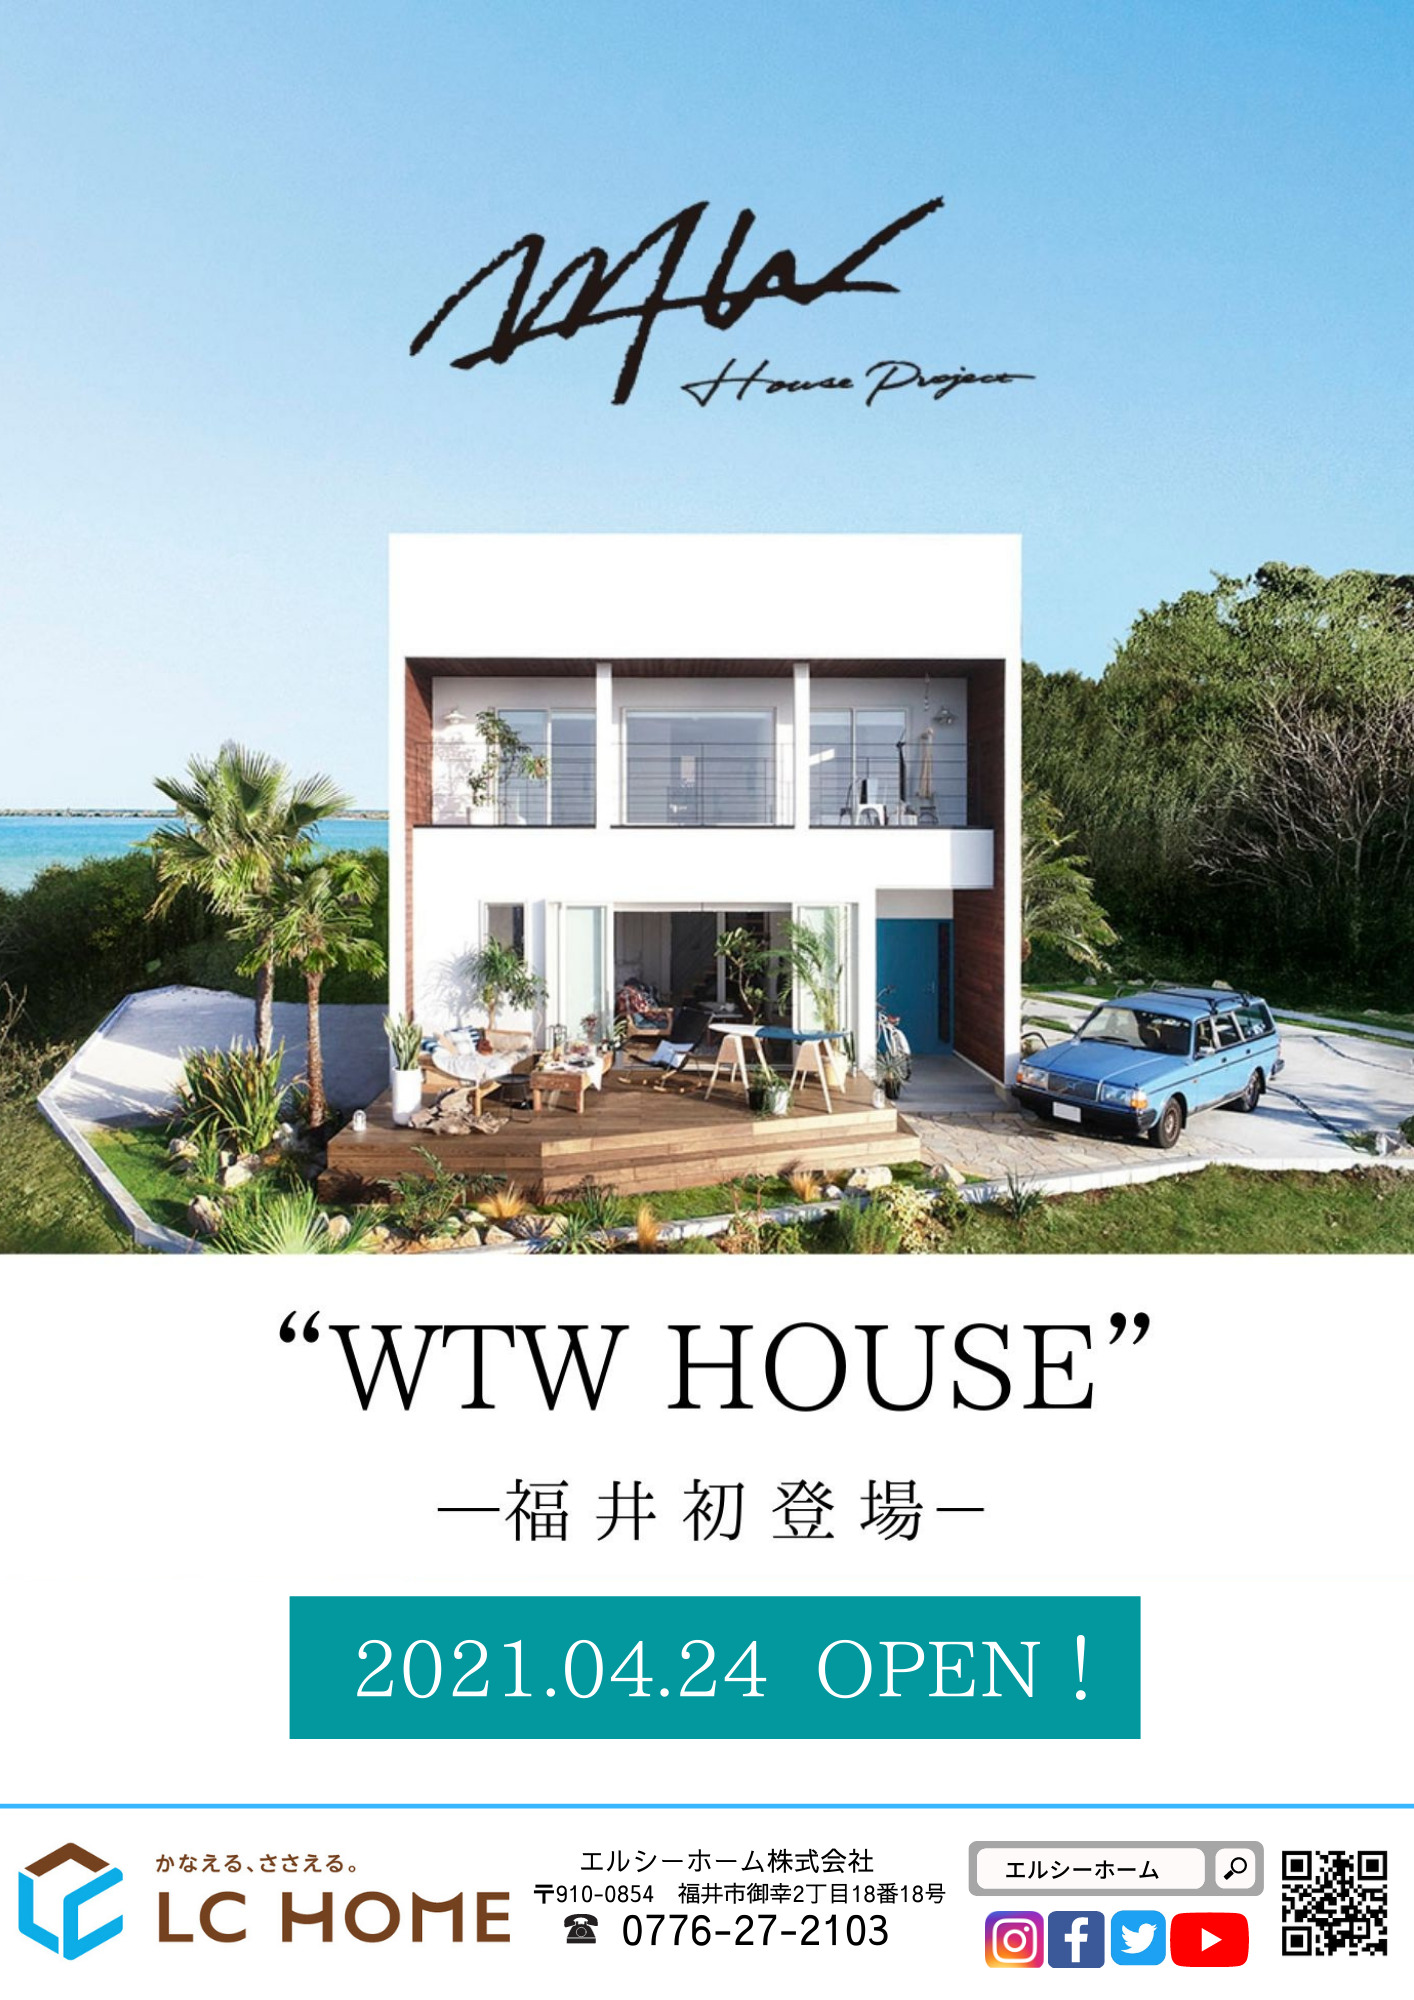 wtwhouse